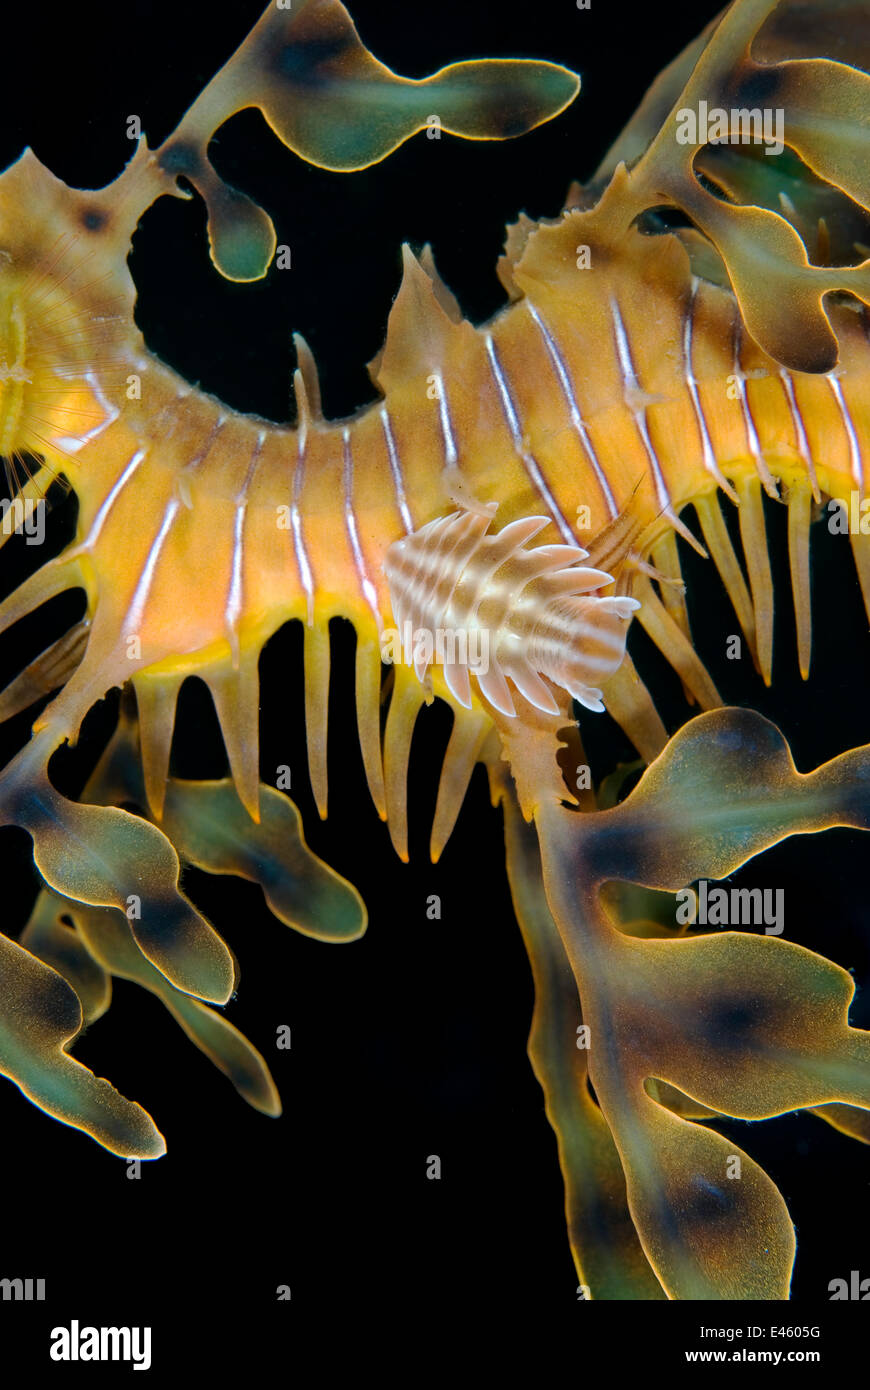 A parasitic isopod attached to a Leafy Seadragon (Phycodurus eques). This species of isopod has an ornately shaped - Stock Image